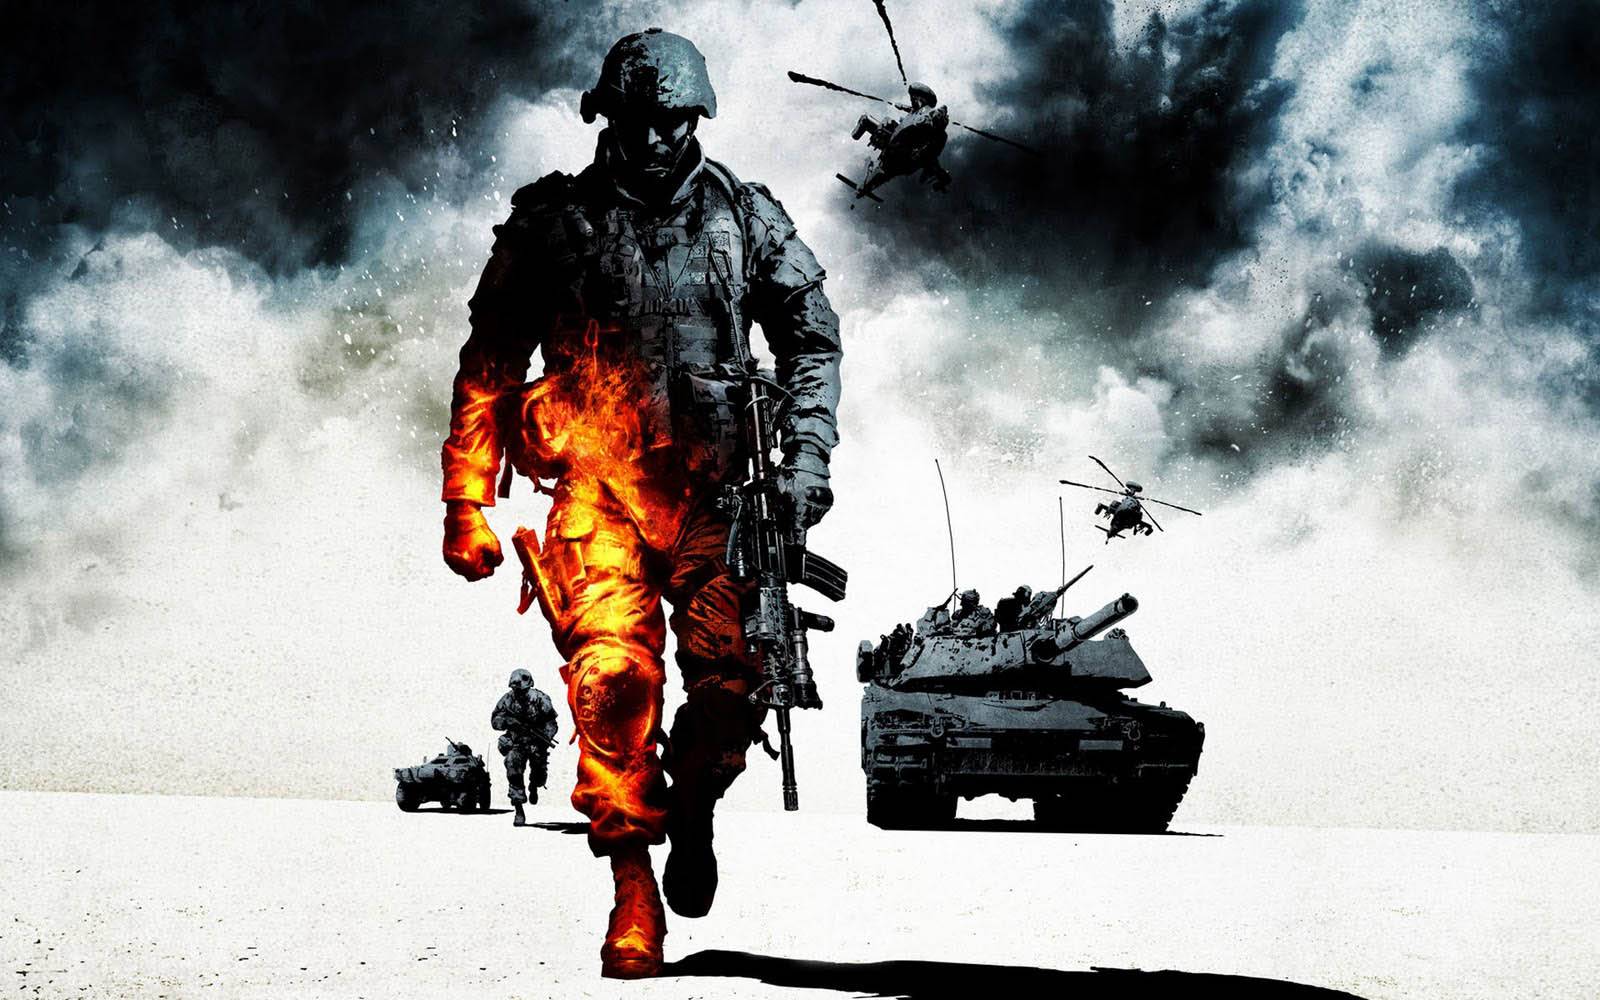 Wallpapers battlefield 3 game wallpapers - Cool backgrounds for games ...